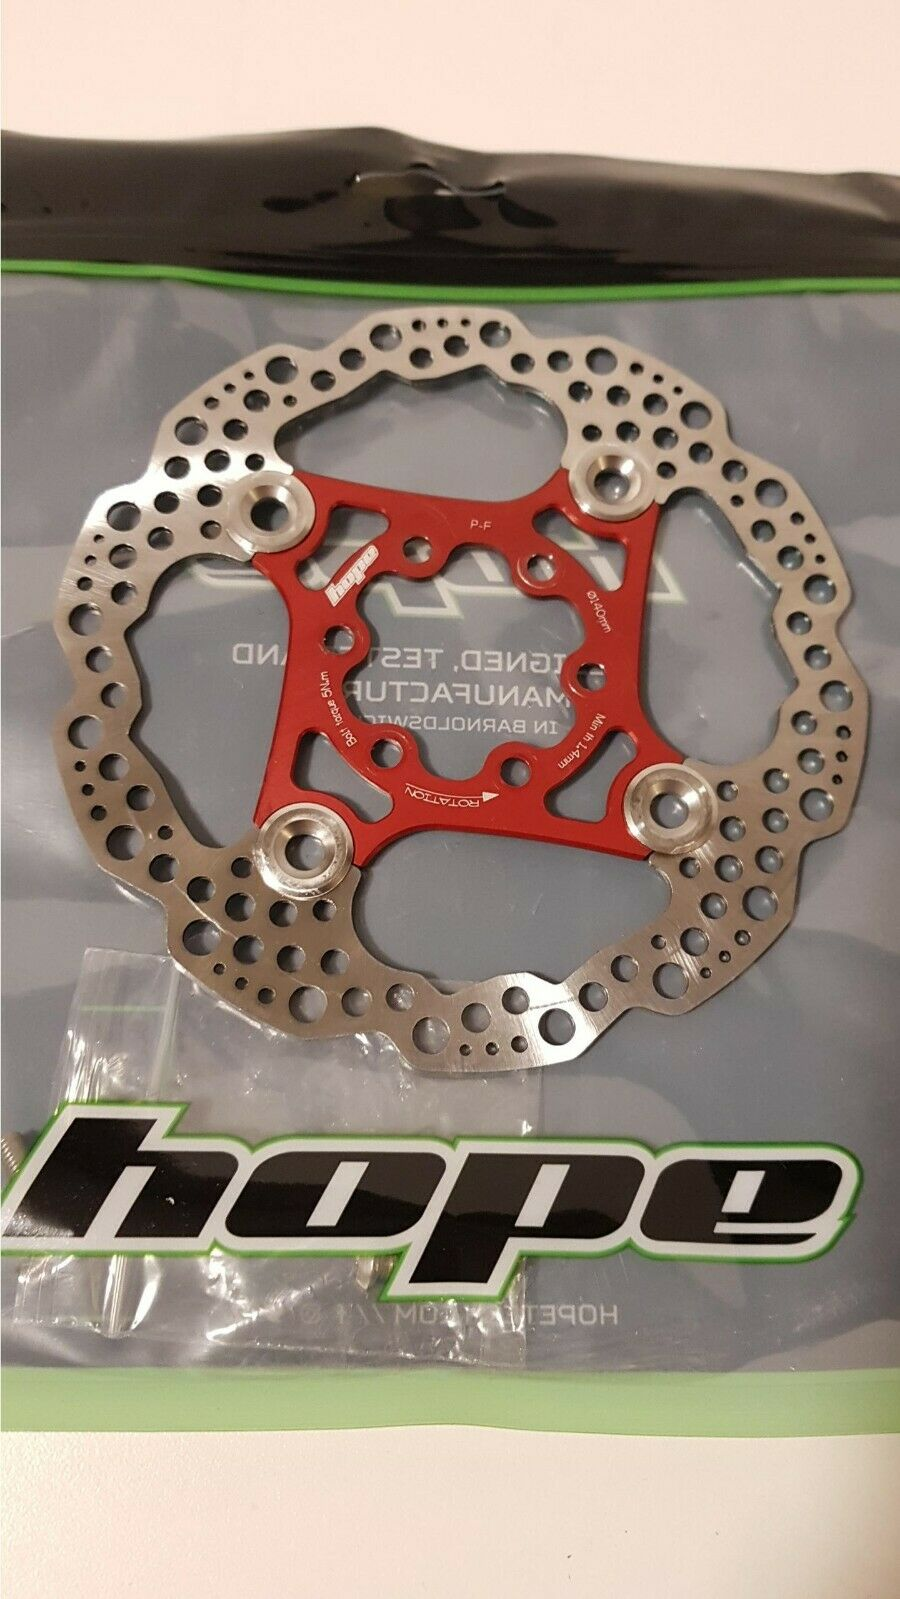 Hope 6 Bolt Floating Disc redor - All colors and Sizes - Brand New